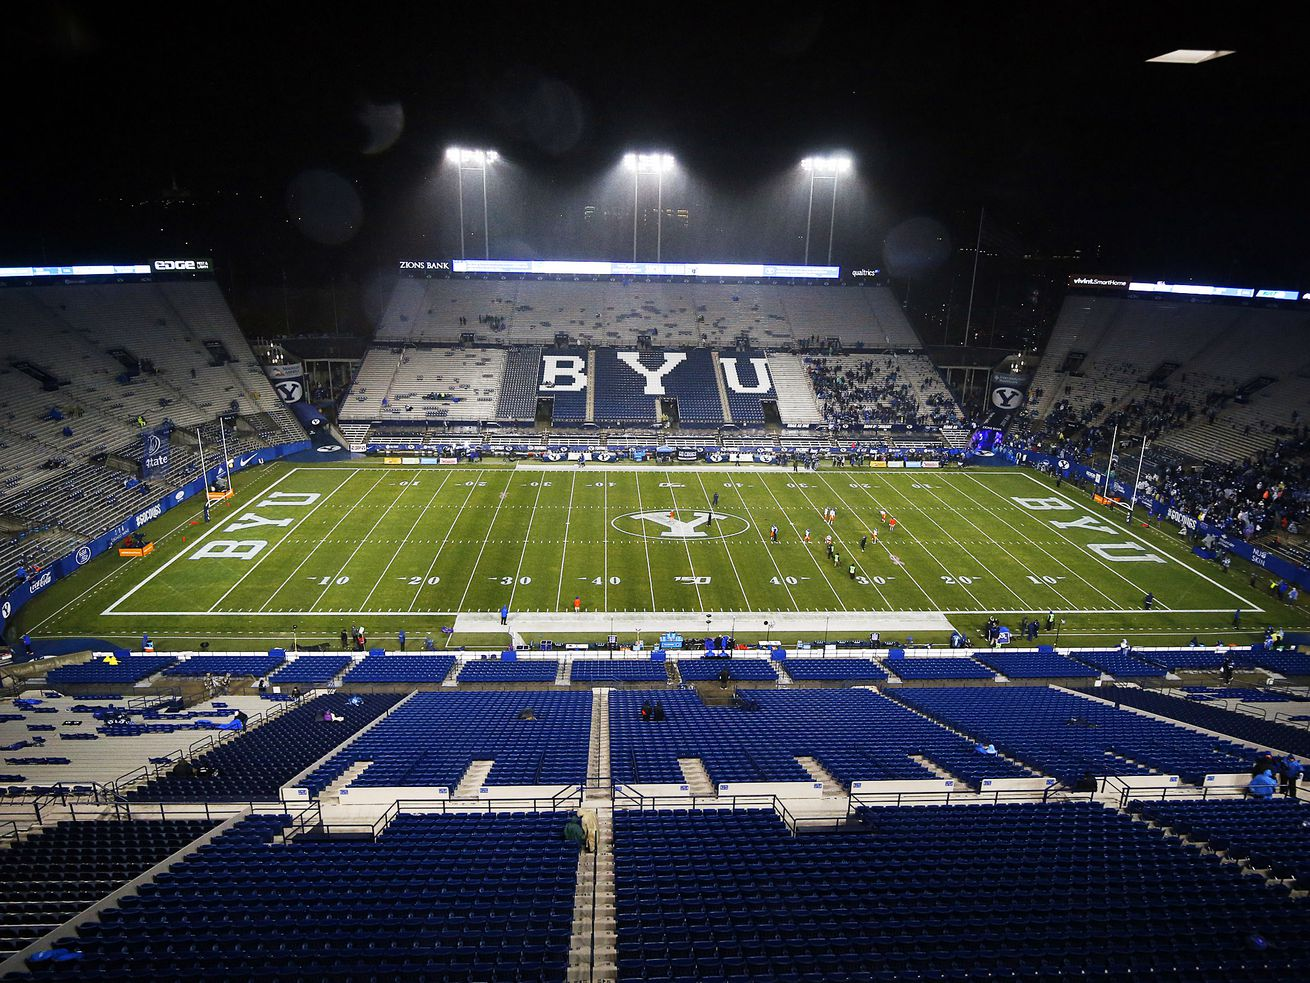 Rain falls at LaVell Edwards Stadium about an hour before Brigham Young University faces Boise State in NCAA football in Provo on Saturday, Oct. 19, 2019.